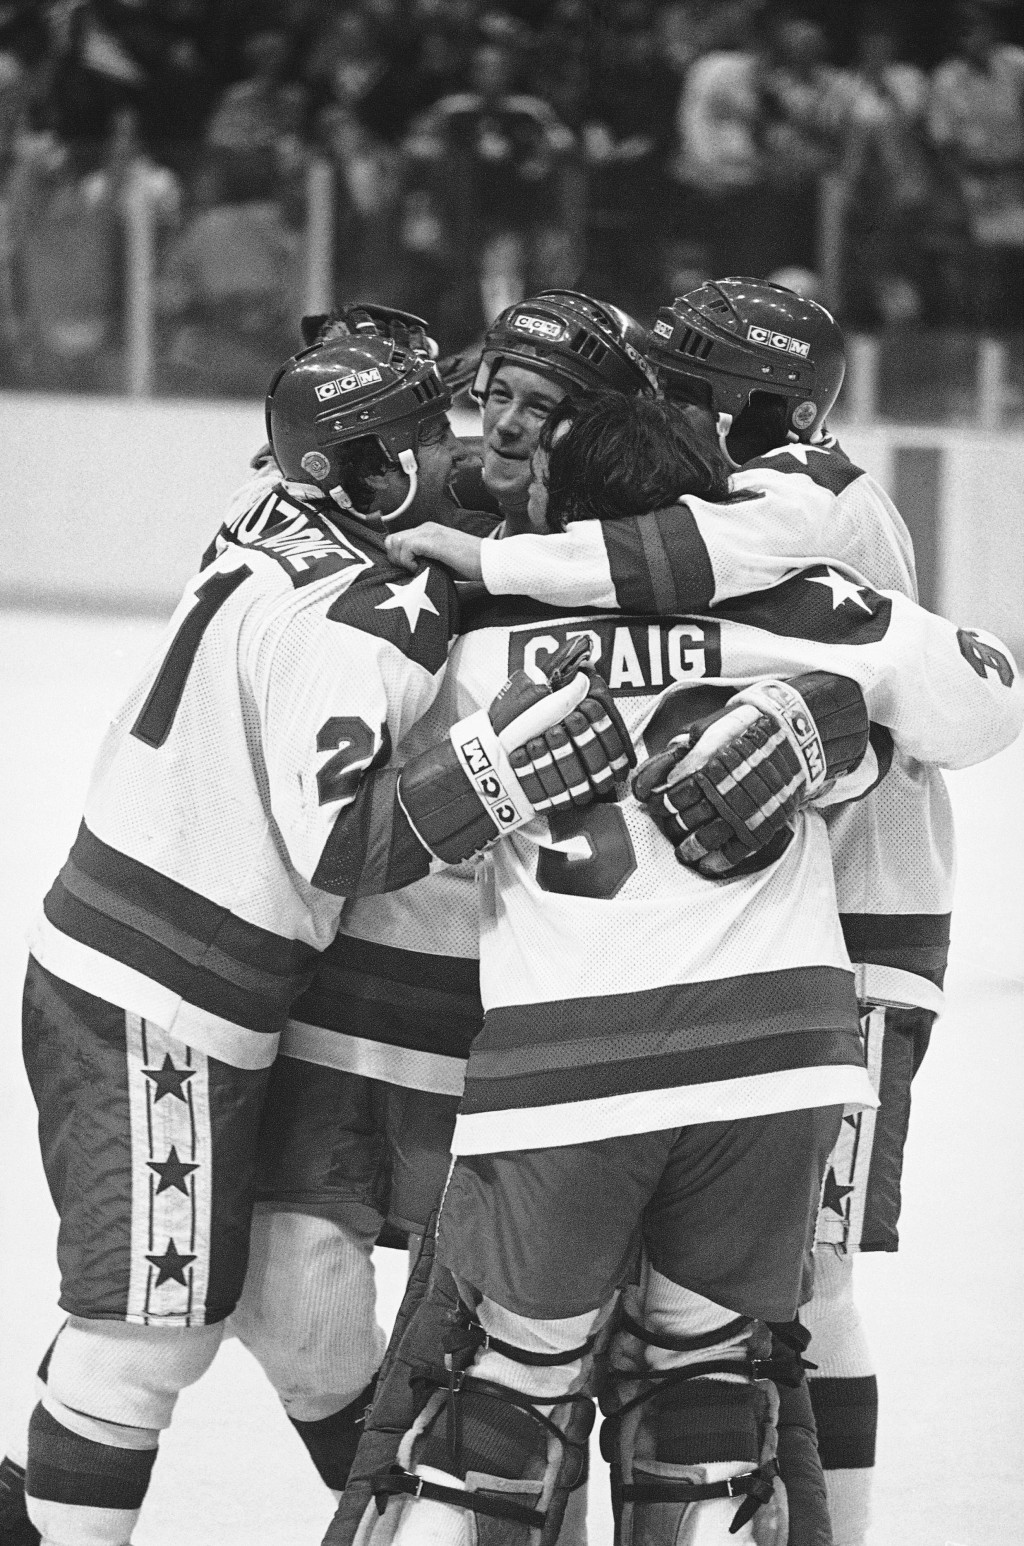 FILE - In this Feb. 22, 1980, file photo, U.S. player Michael Eruzione, left, is congratulated by teammates James Craig, John O'Callahan and David Sil...